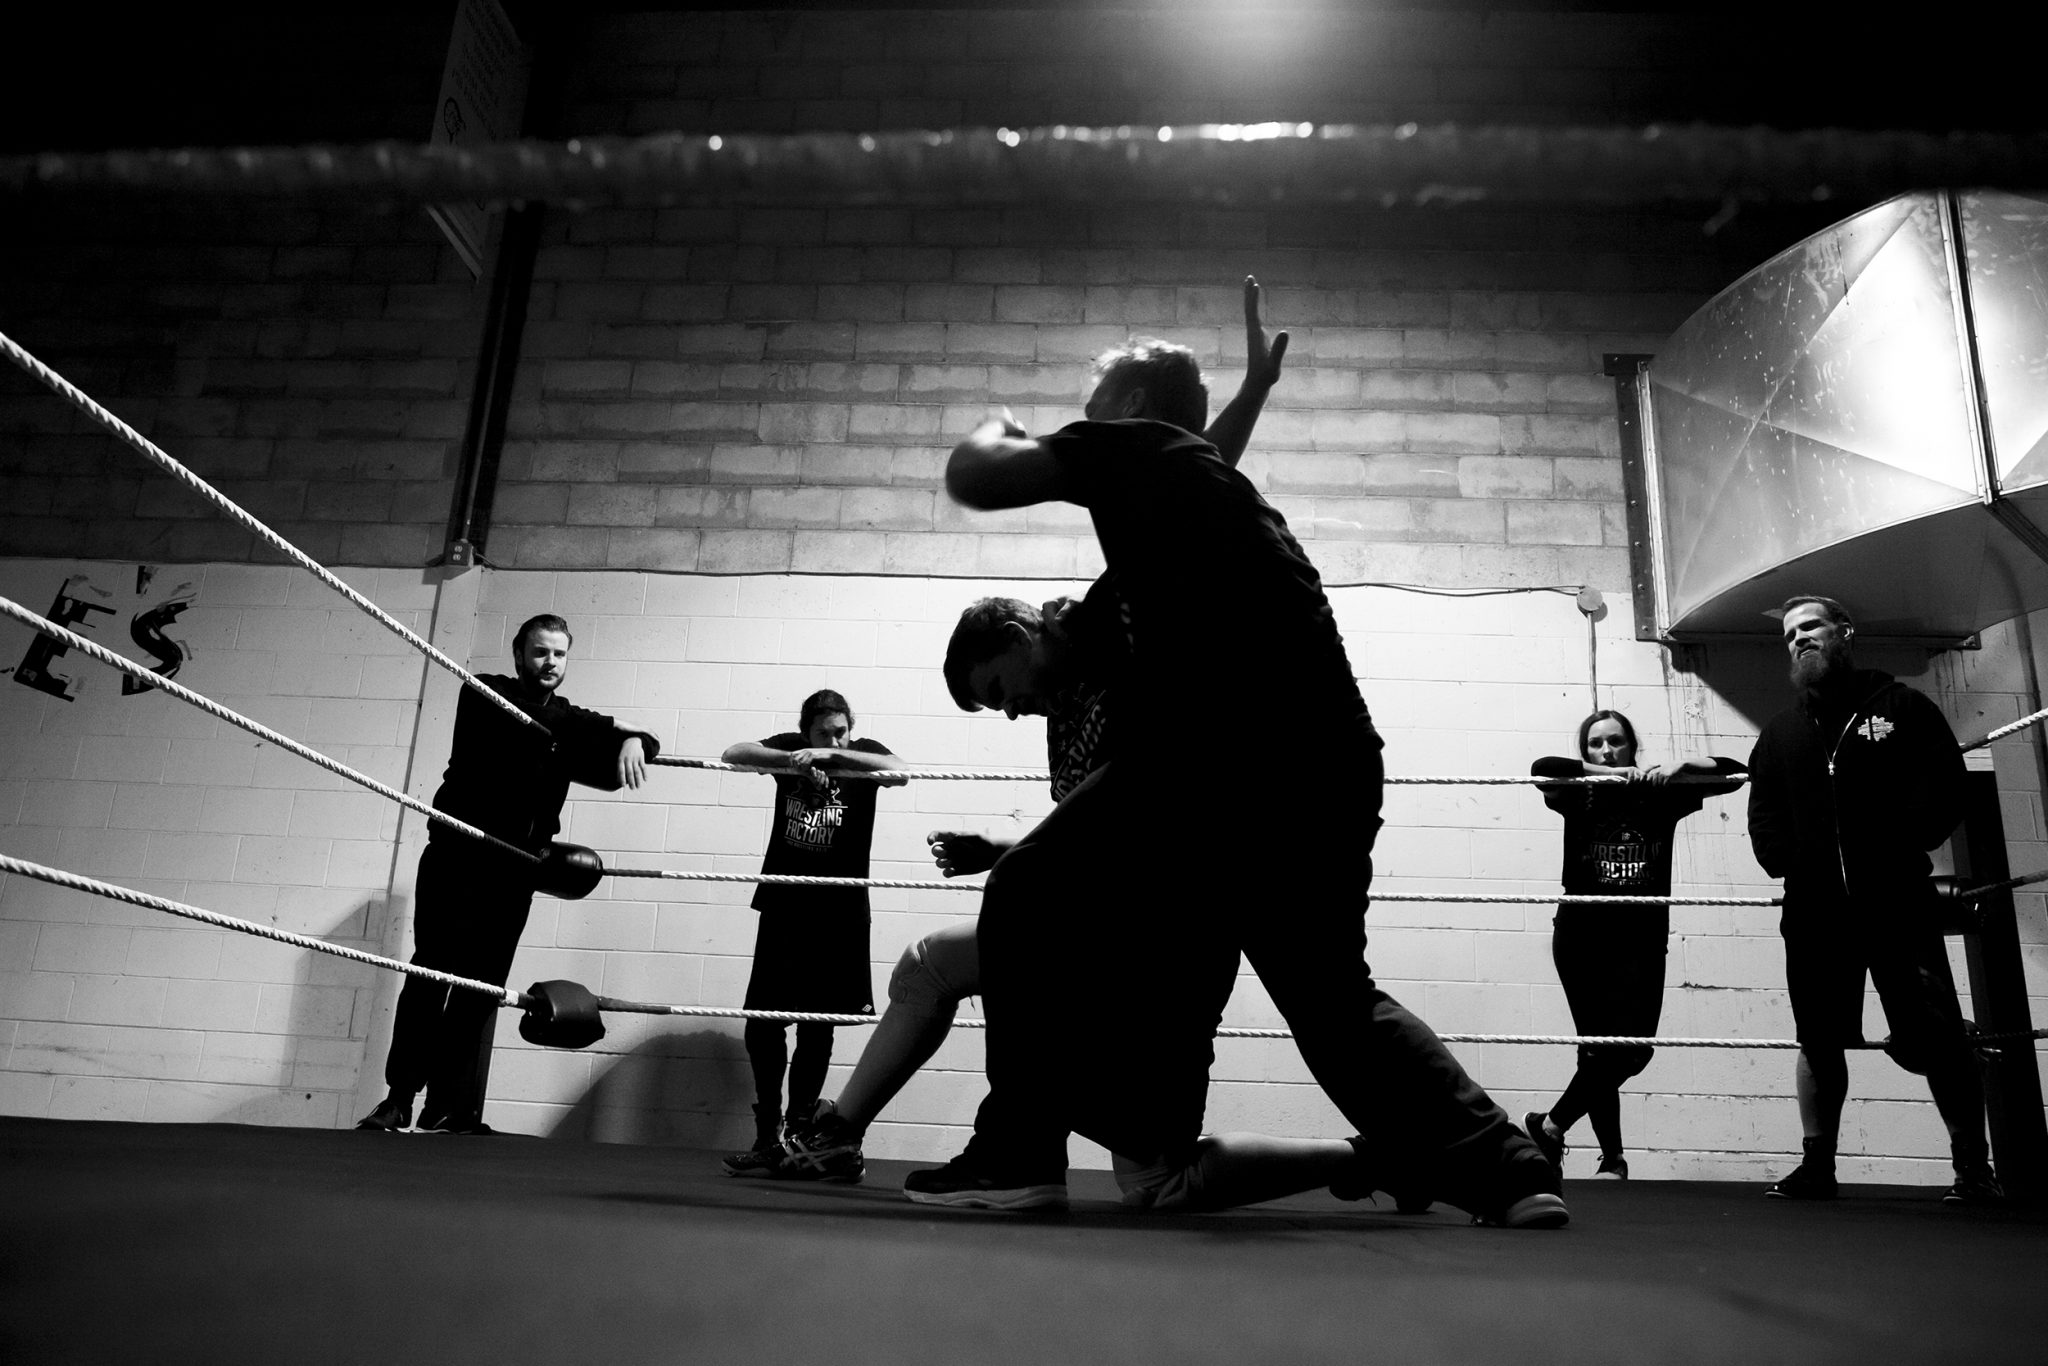 Students lock up during training. Located in the back corridors of the old Ice House, the dimly lit atmosphere suits a wrestling school perfectly.